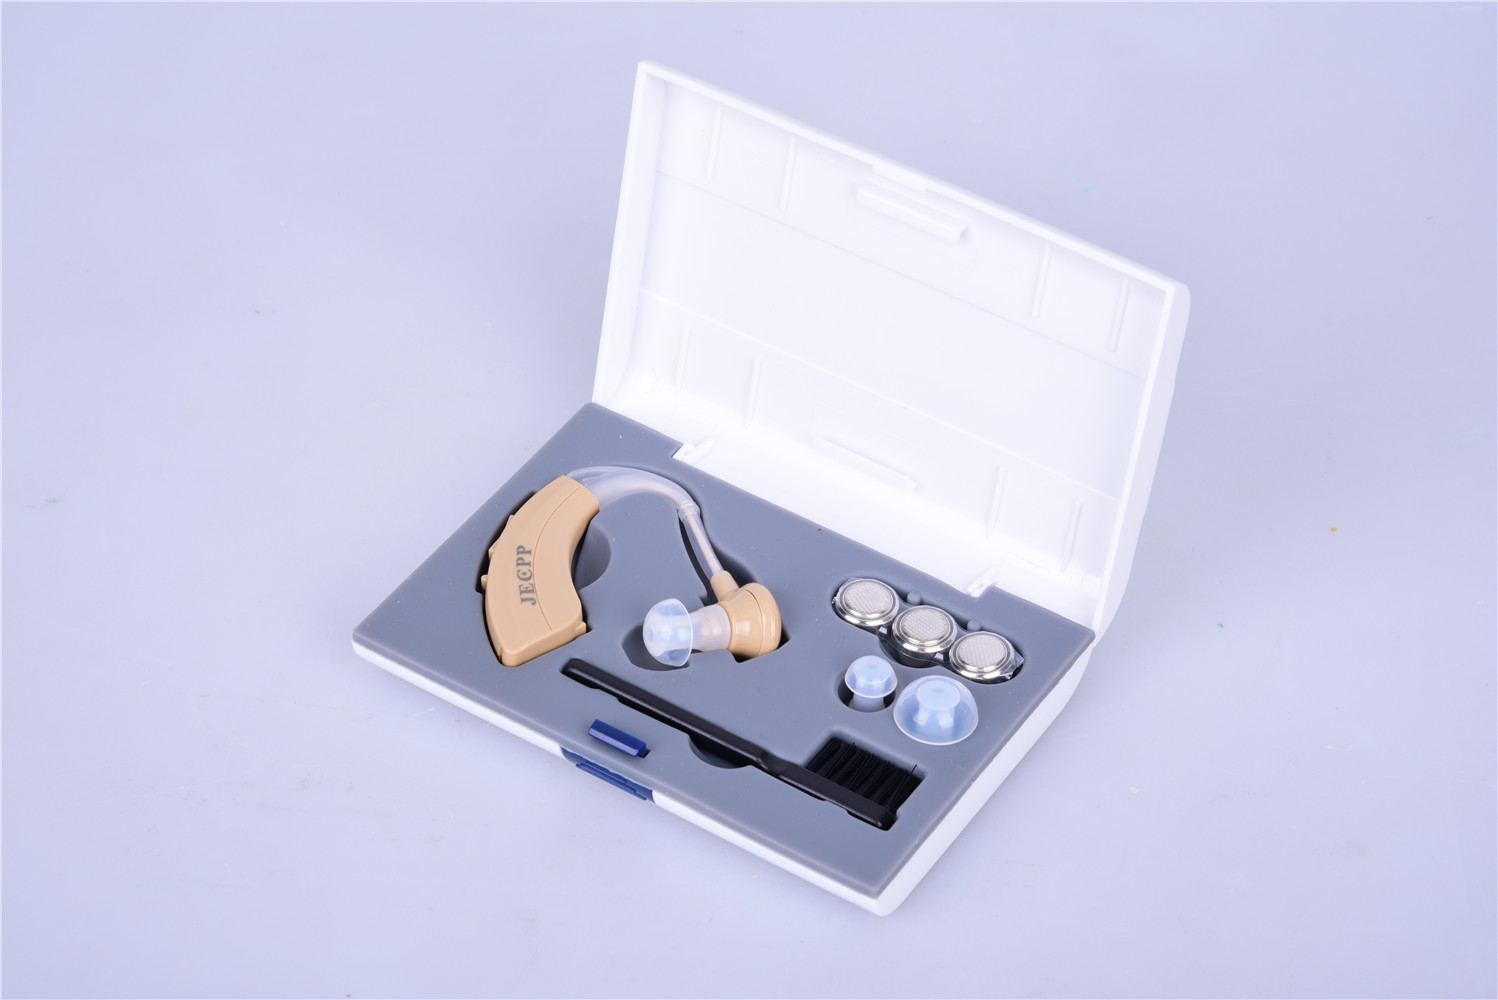 Details about JECPP Mini KXW-211 Hearing Aid Digital Sound Amplifier  Enhancement In The Ear